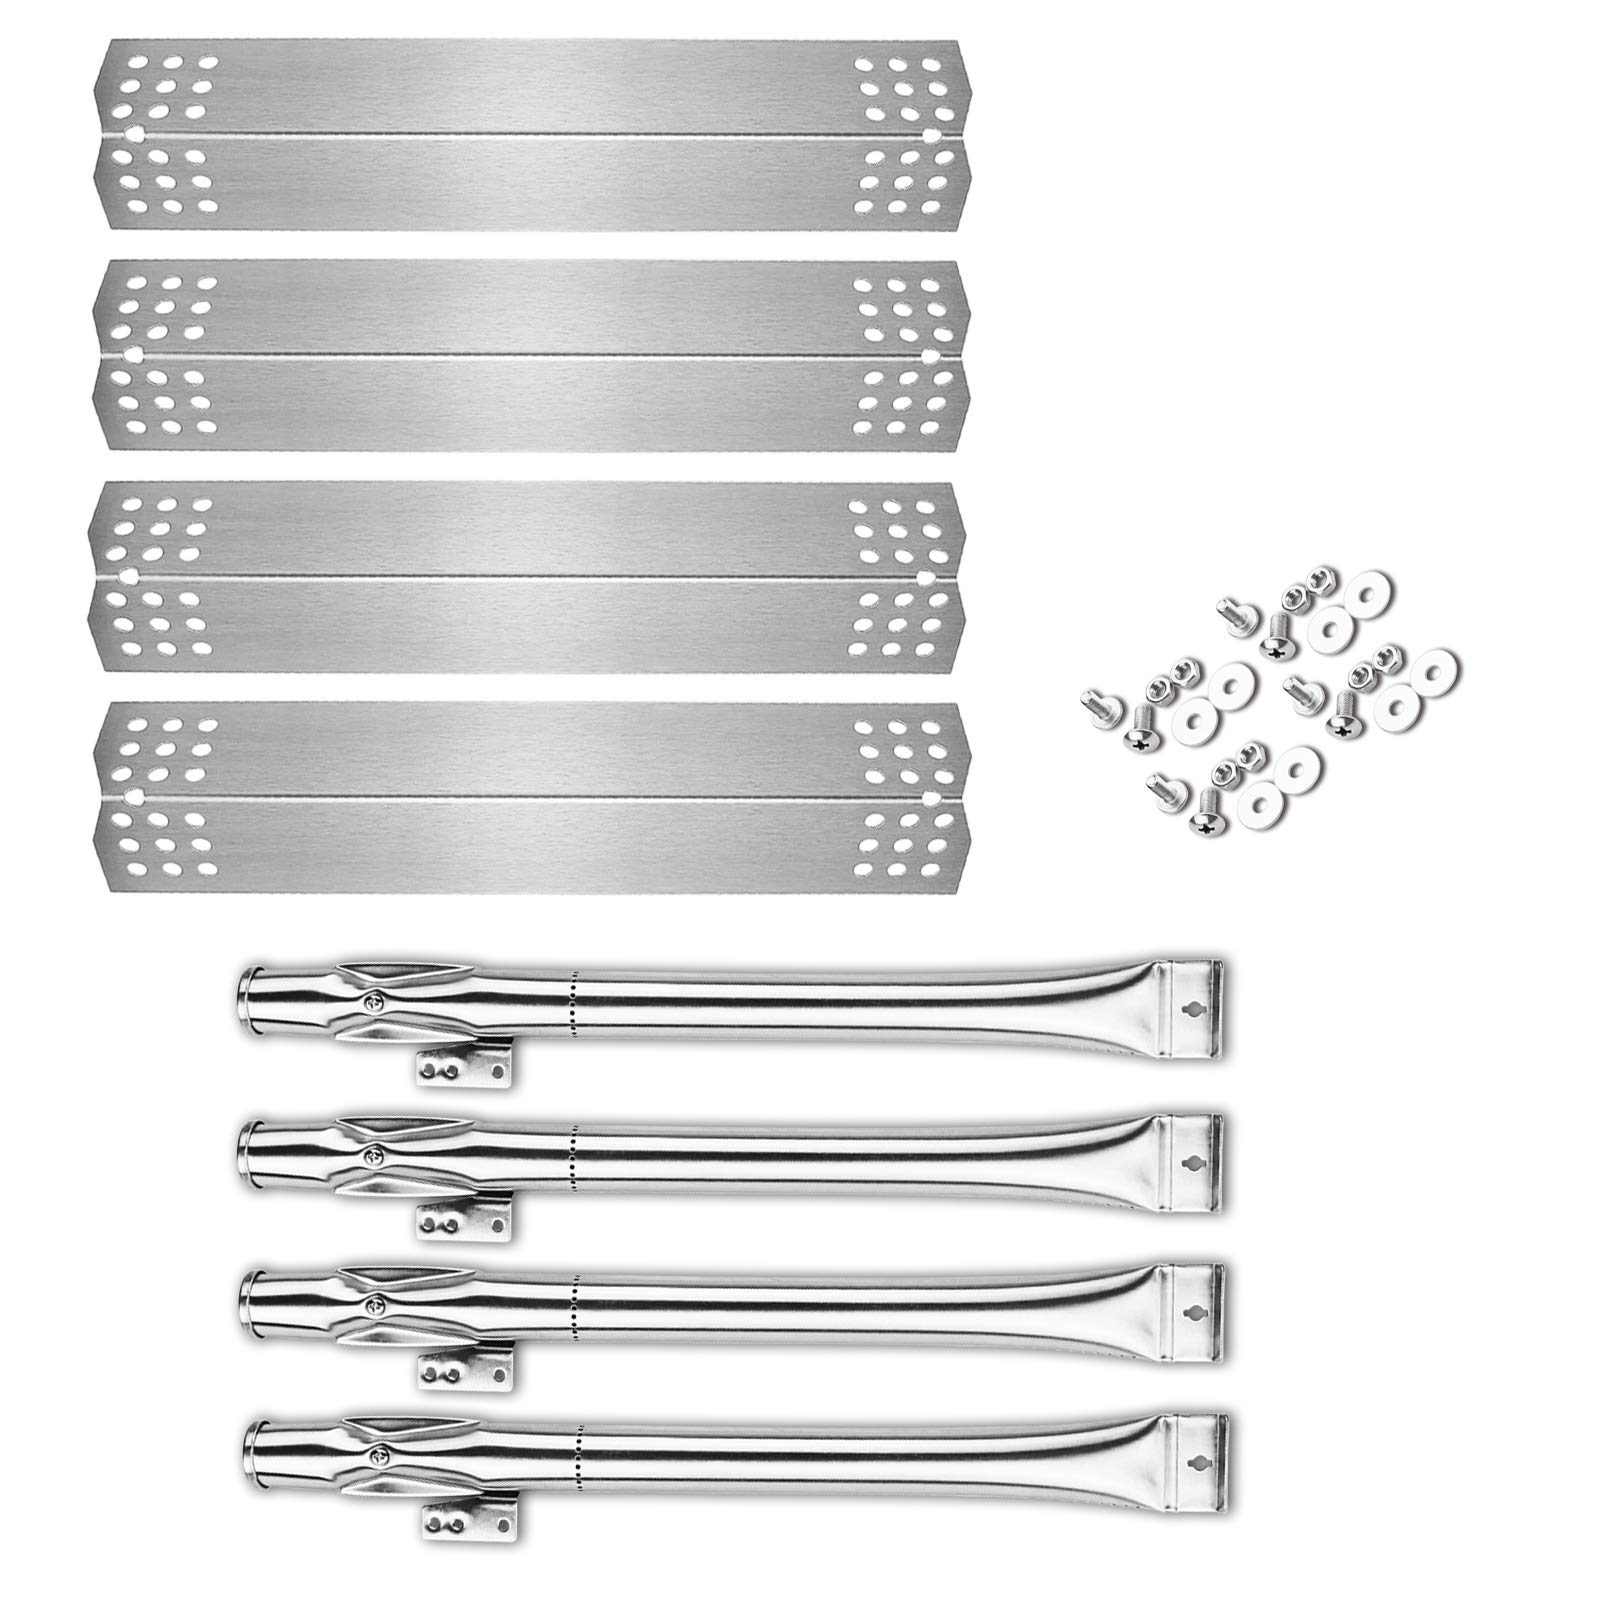 Uniflasy BBQ Parts Kit Grill Burner and Heat Plates Shield for Home Depot Nexgrill 720-0830H, 720-0830D, Includes 4 Pack Stainless Steel Grill Burner Tubes Pipe and Burner Cover Replacement Parts Kit by Uniflasy